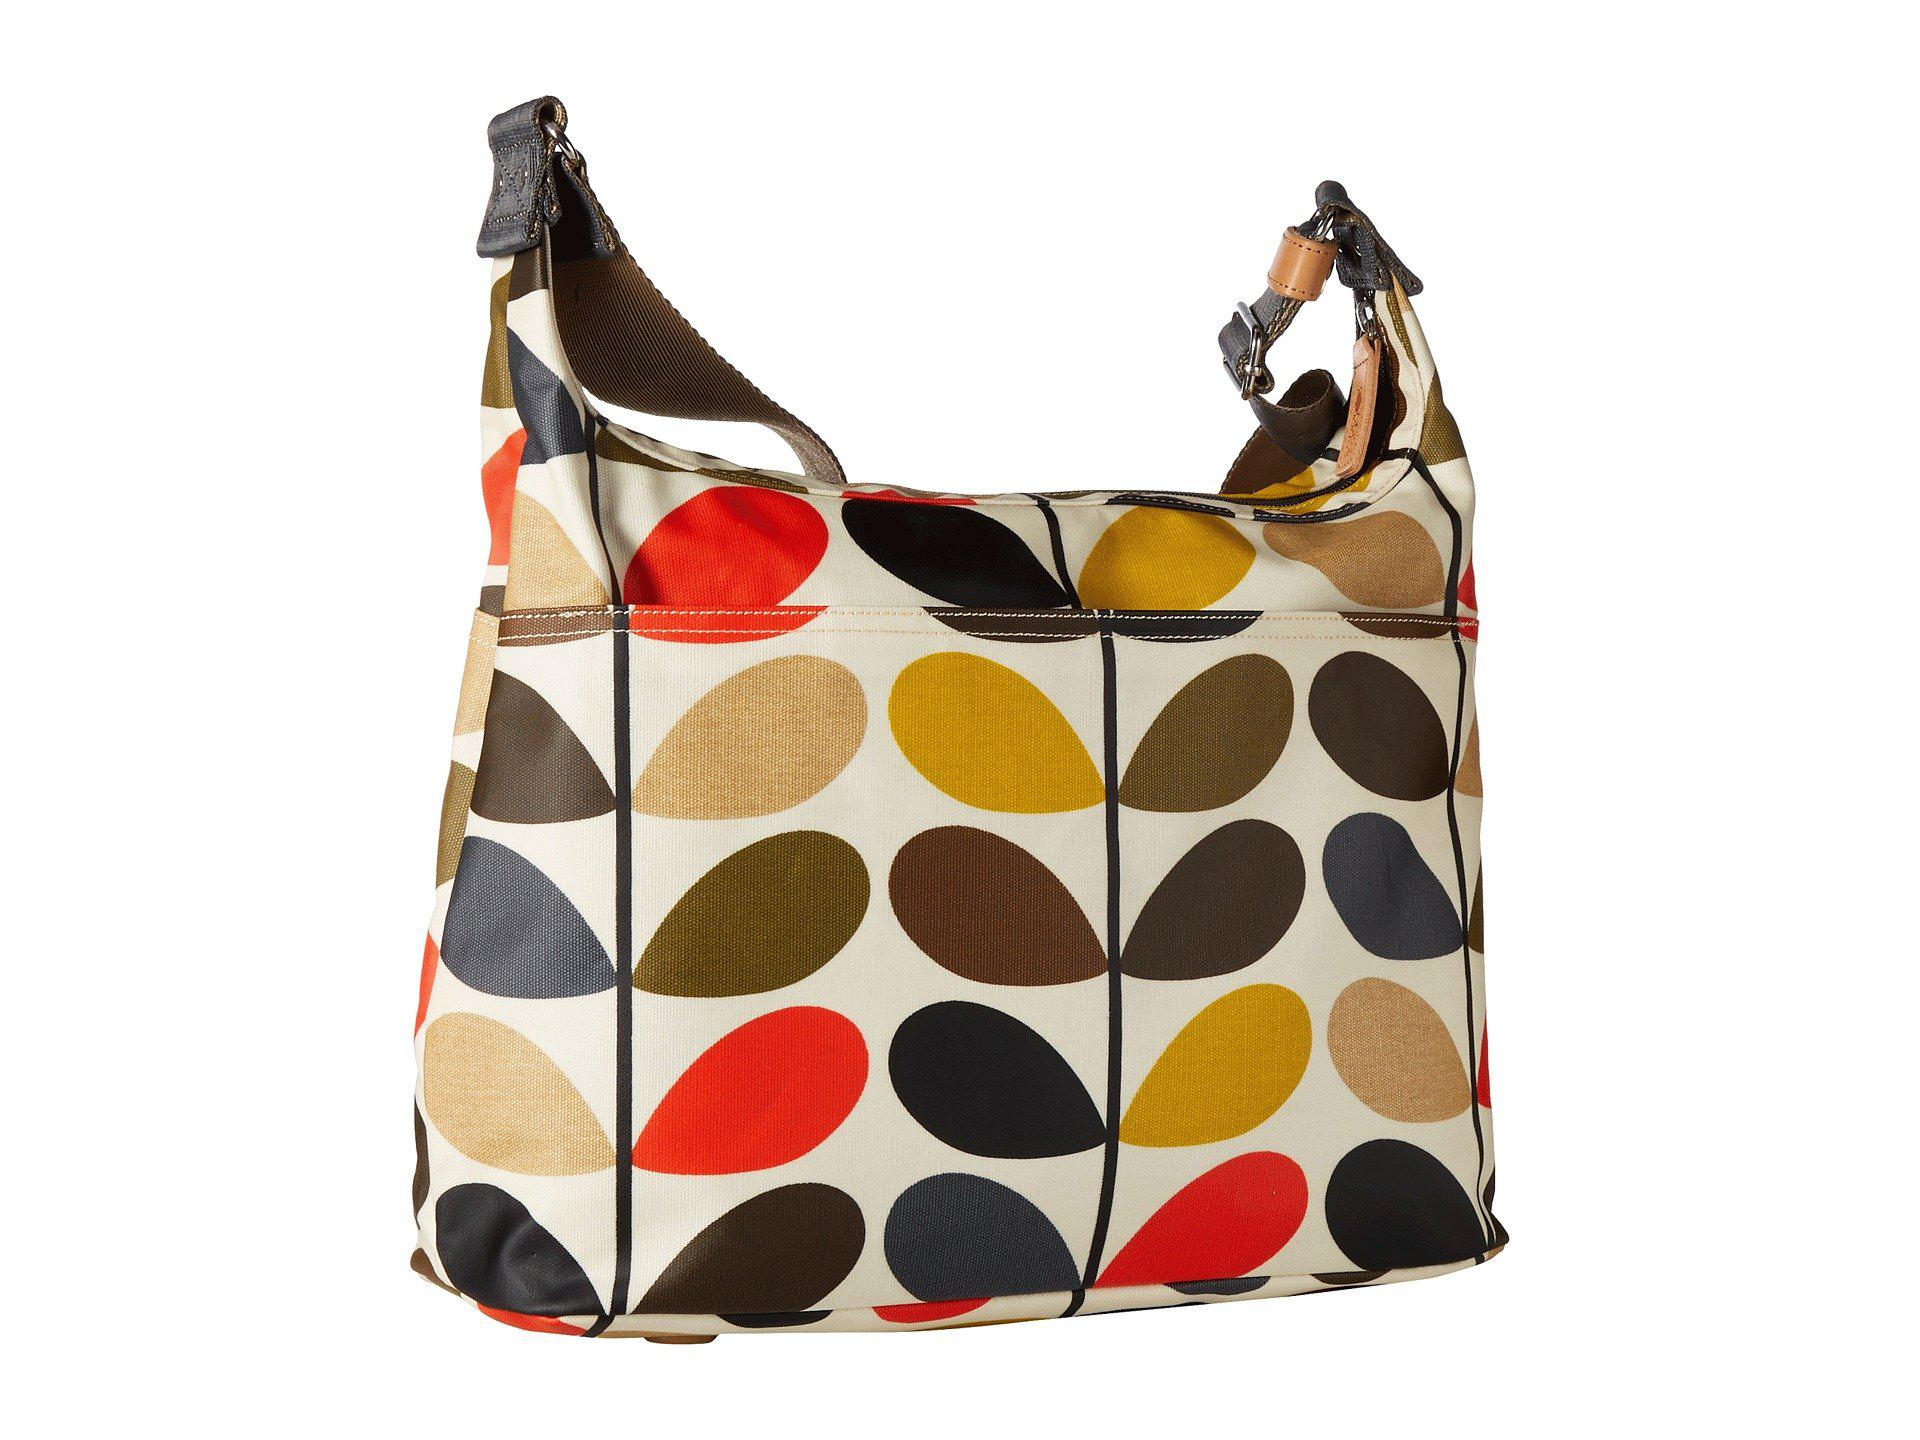 f8b2cd6dfd4 Lyst - Orla Kiely Classic Multi Stem Sling Baby Bag (multi) Handbags